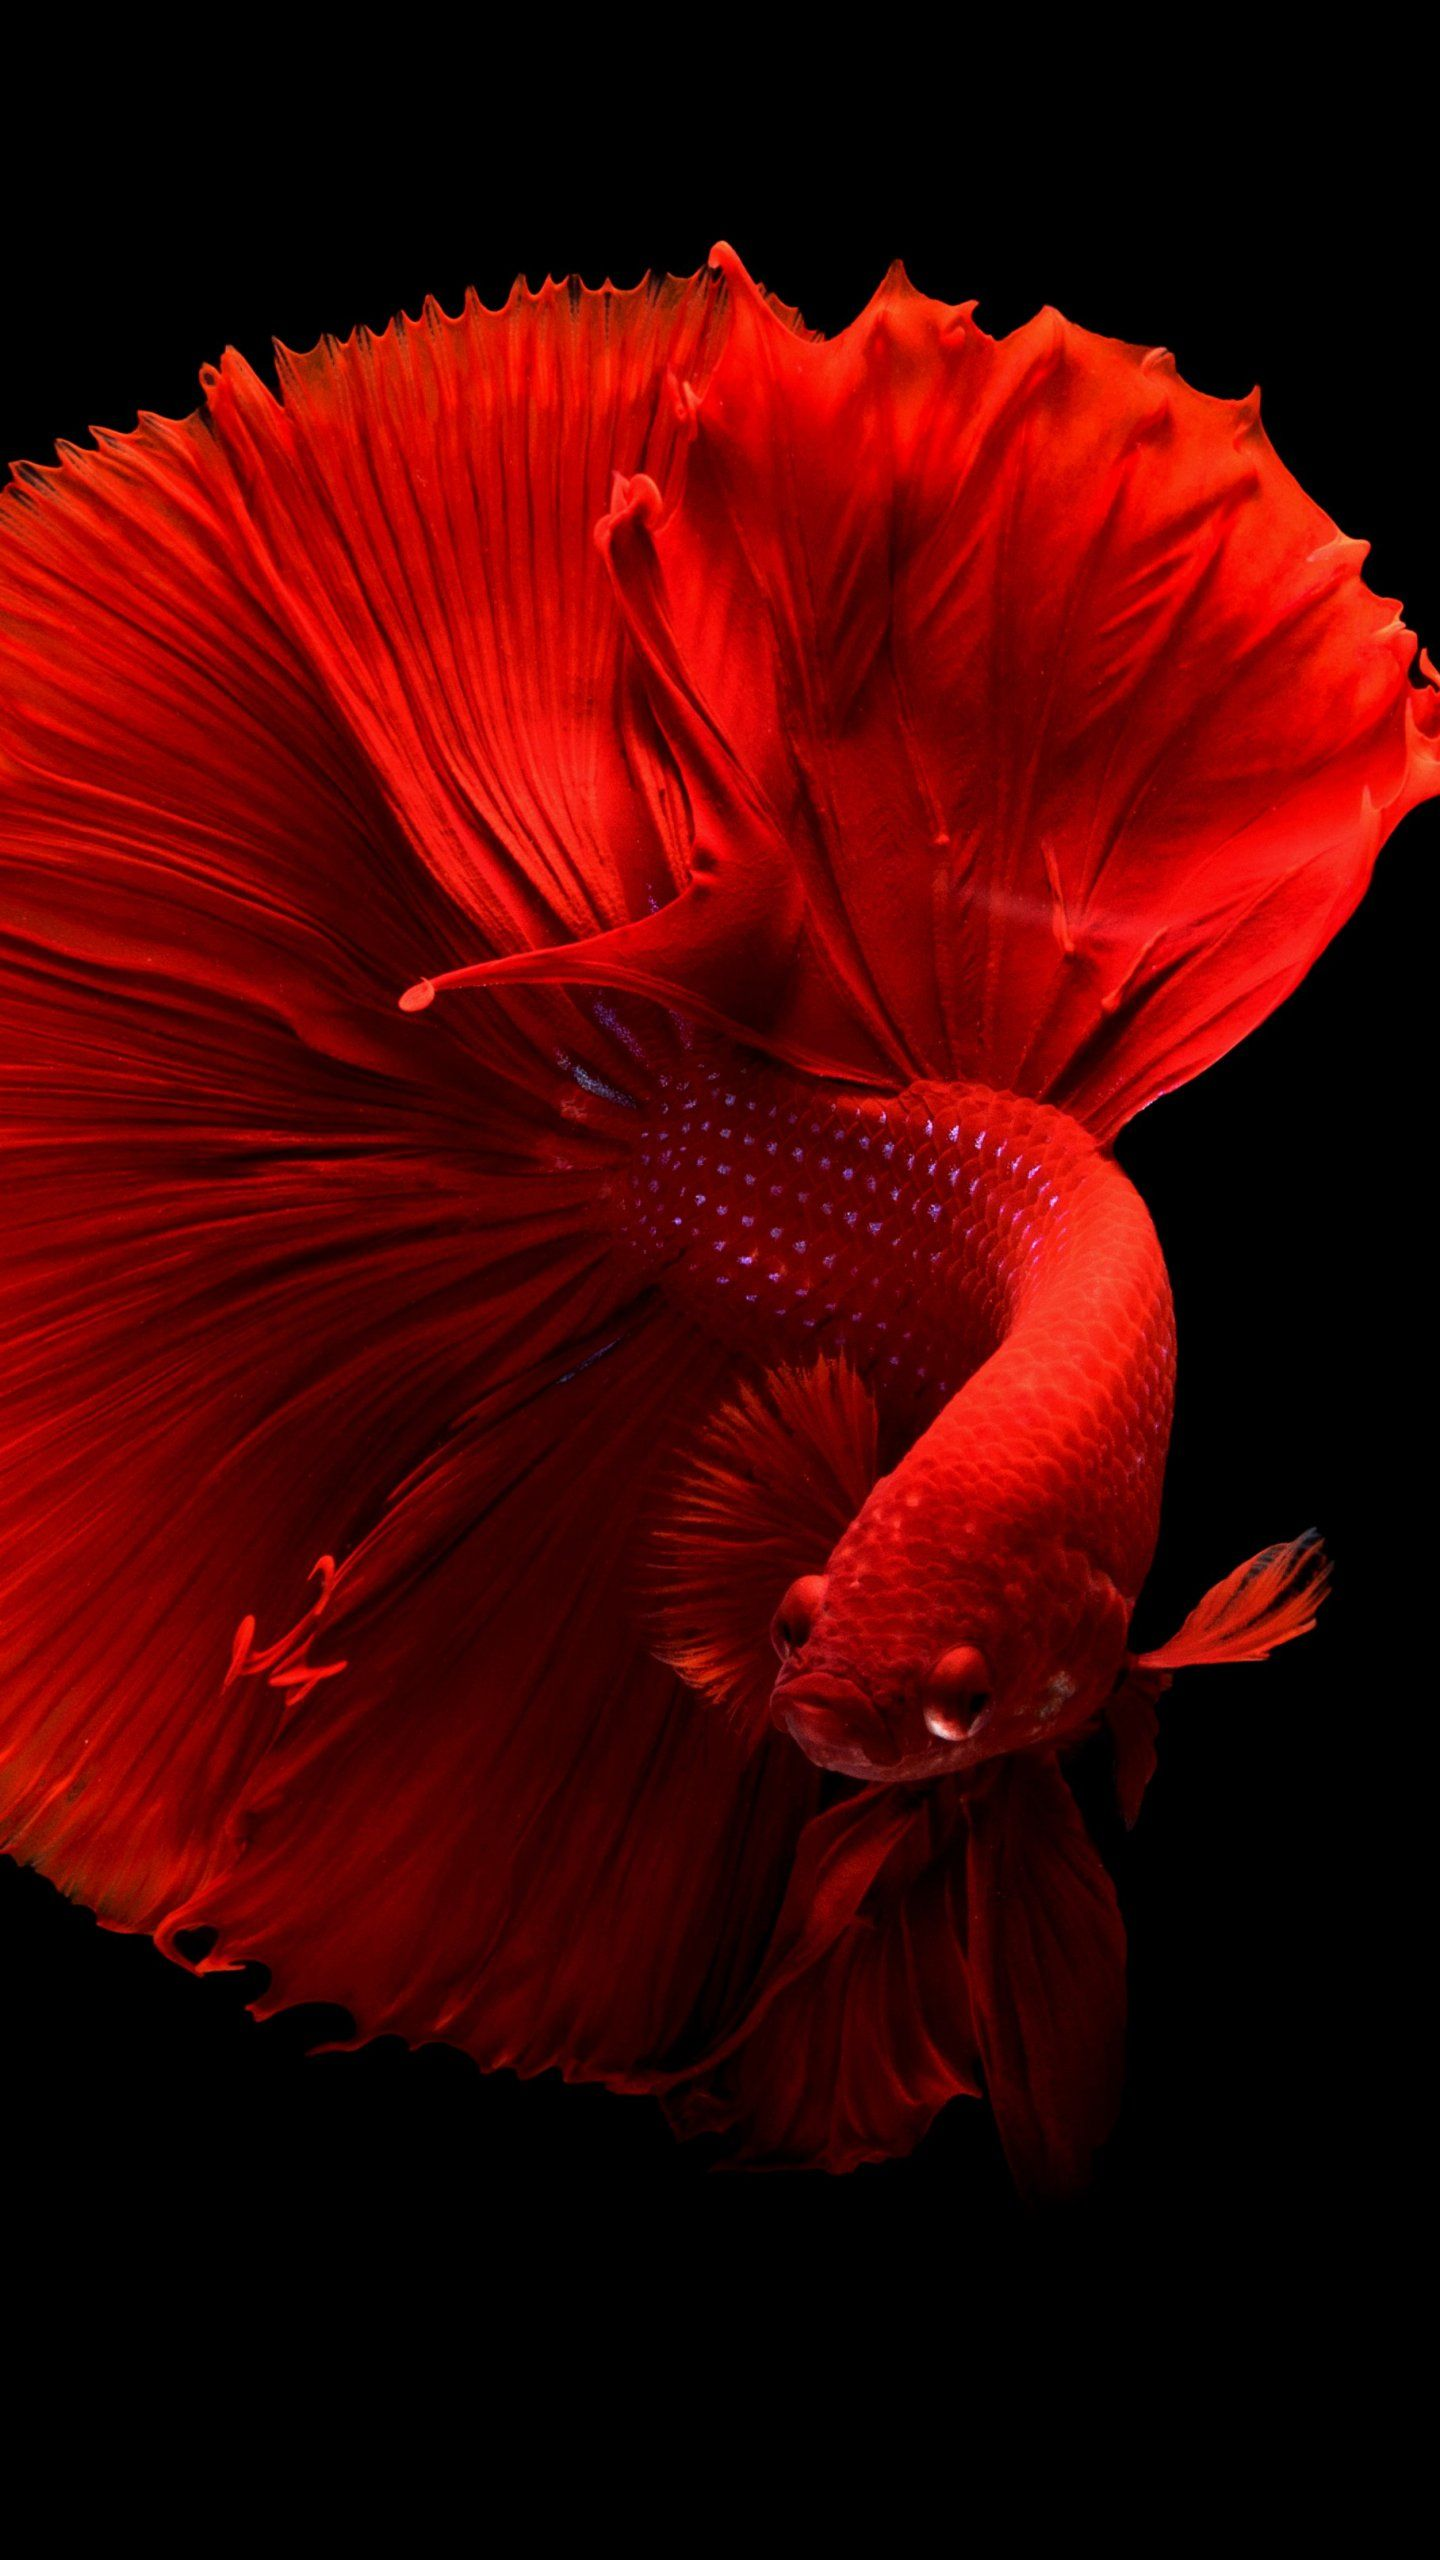 Siamese Fighting Fish Wallpaper iPhone, Android